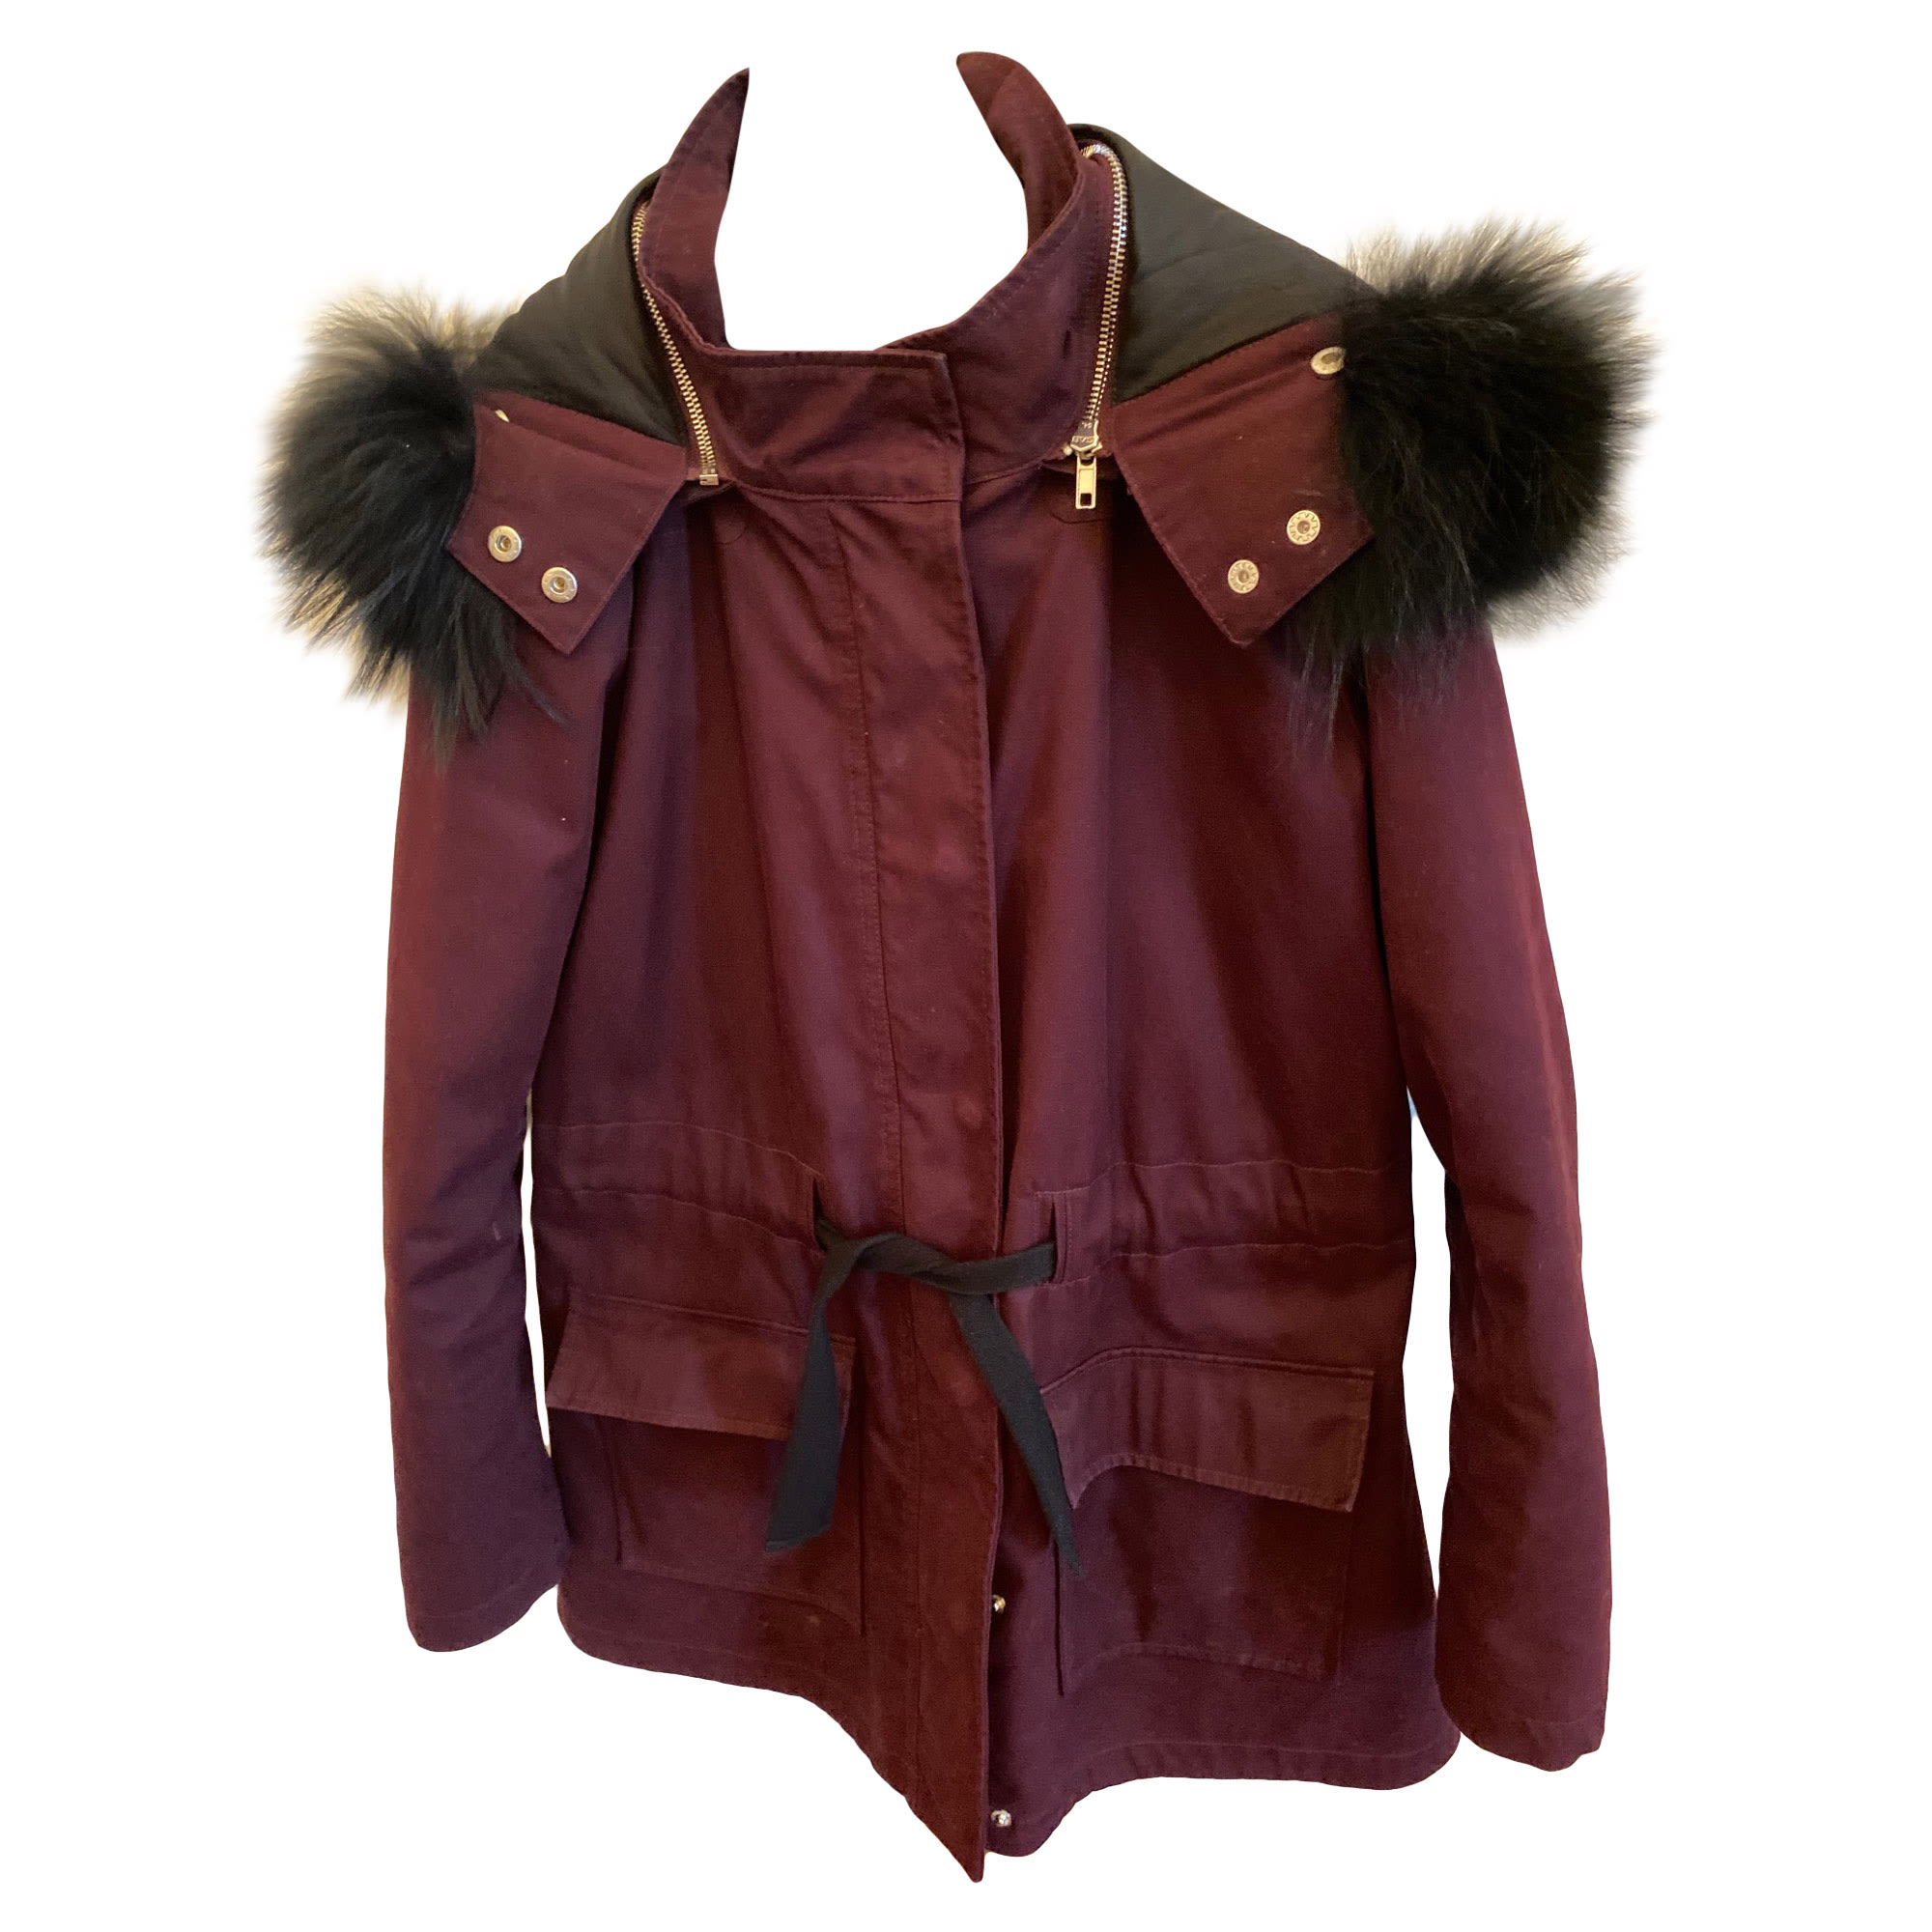 Imperméable, trench CLAUDIE PIERLOT Rouge, bordeaux